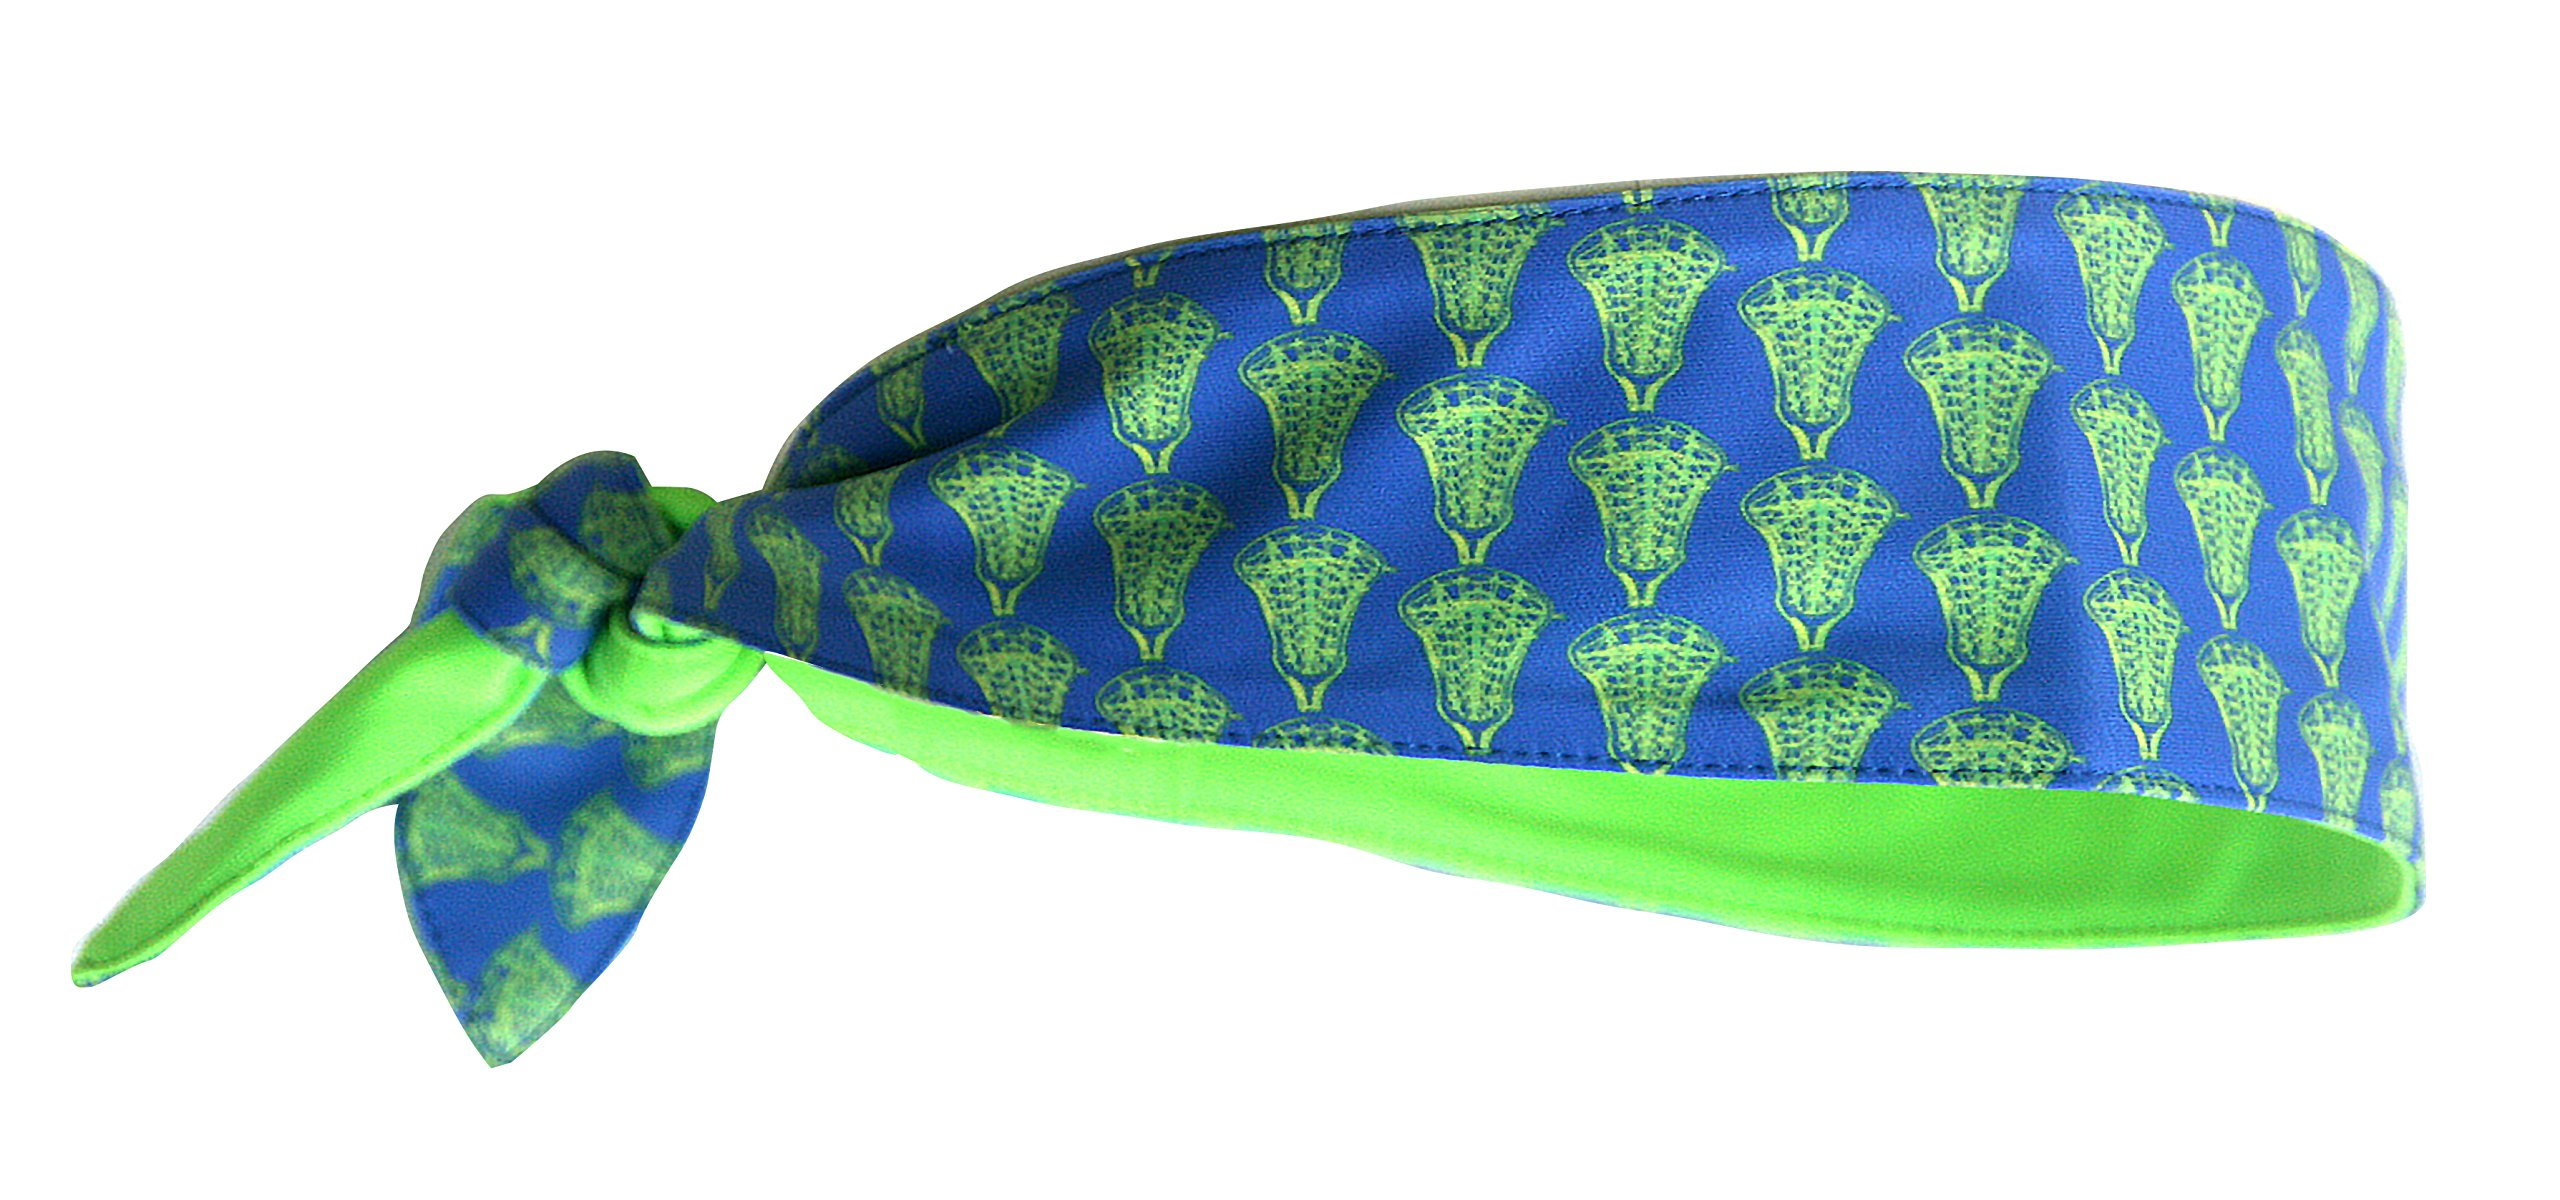 MSquare STYLISH TWO COLOR REVERSIBLE TIE HEADBAND WITH UNIQUE LACROSSE PRINT FOR FITNESS WORKOUT SPORTS LACROSSE RUNNING MOISTURE WICKING STRETCH FABRIC ADULTS KIDS LOOK GREAT WITH THIS UNIQUE PRINT